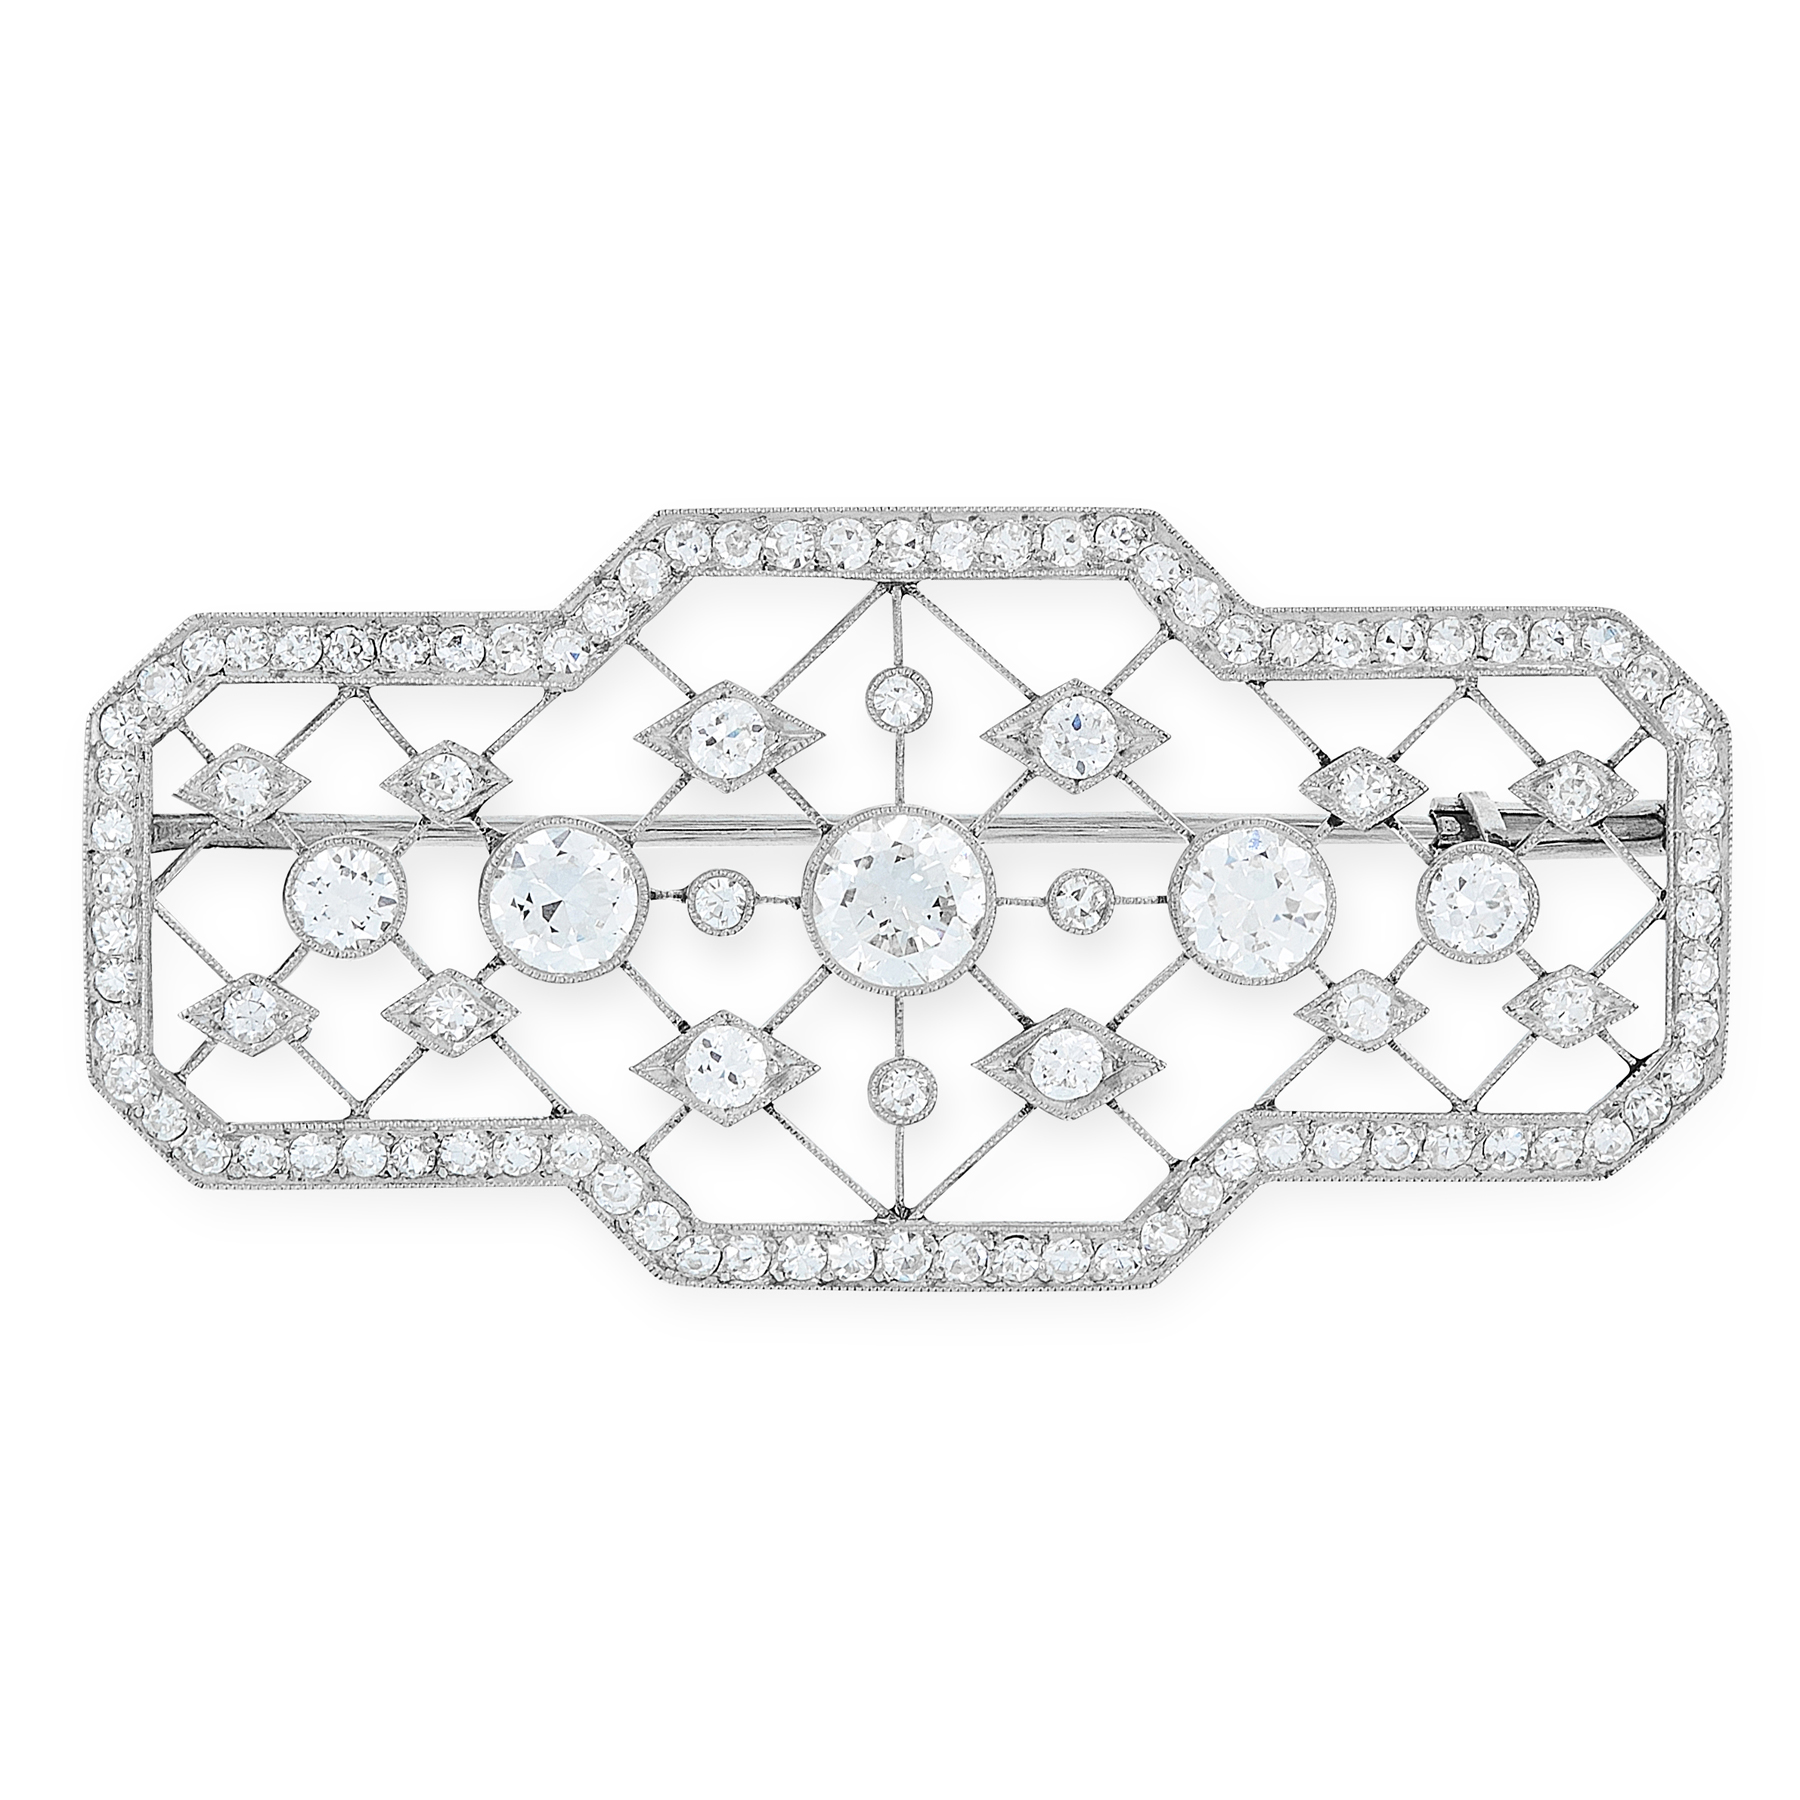 A DIAMOND BROOCH, EARLY 20TH CENTURY the body formed of a crosshatch lattice of wires accented by